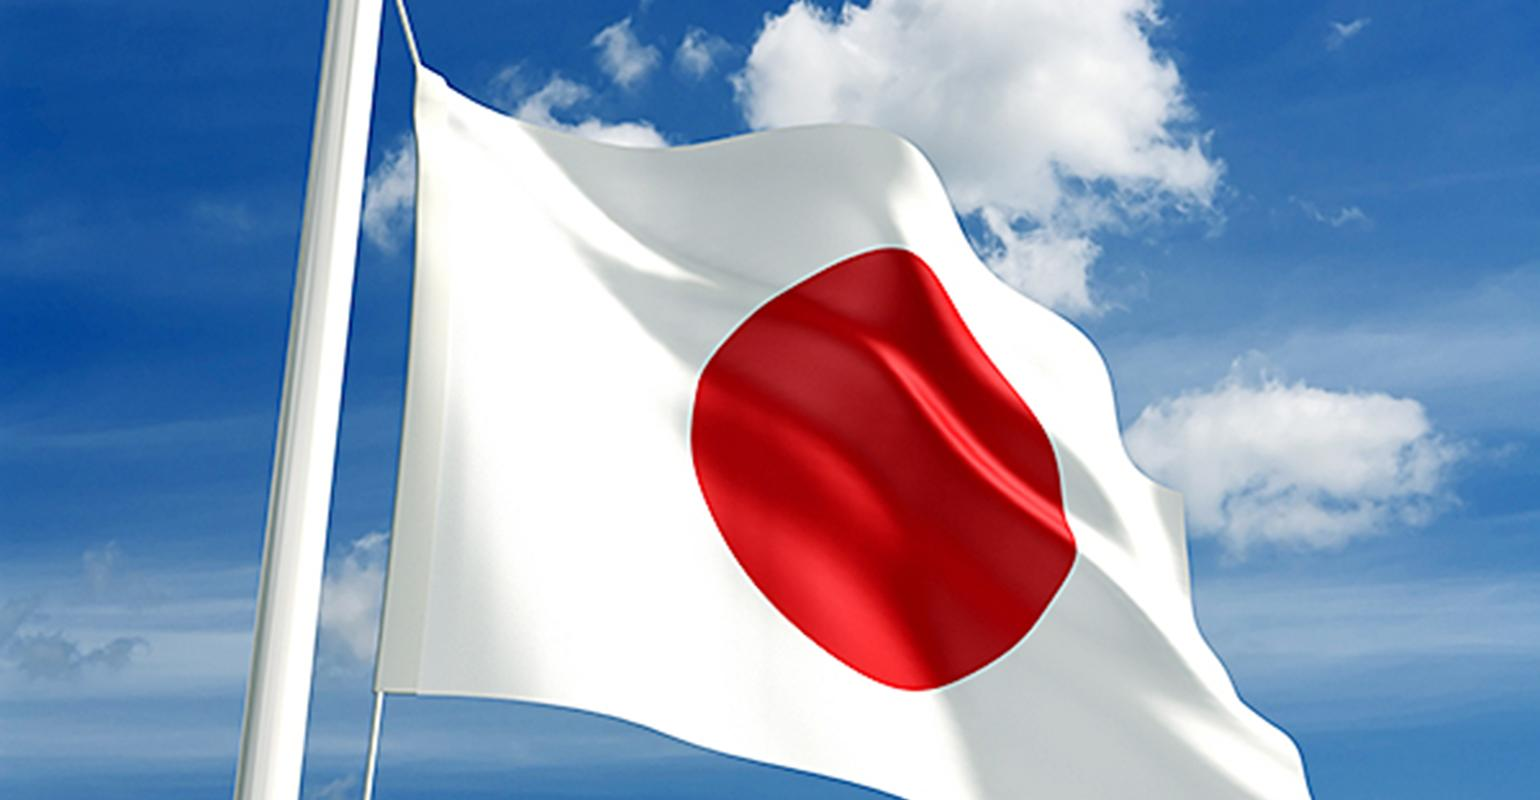 Japan to assist Guyana, others with treatment for COVID patients